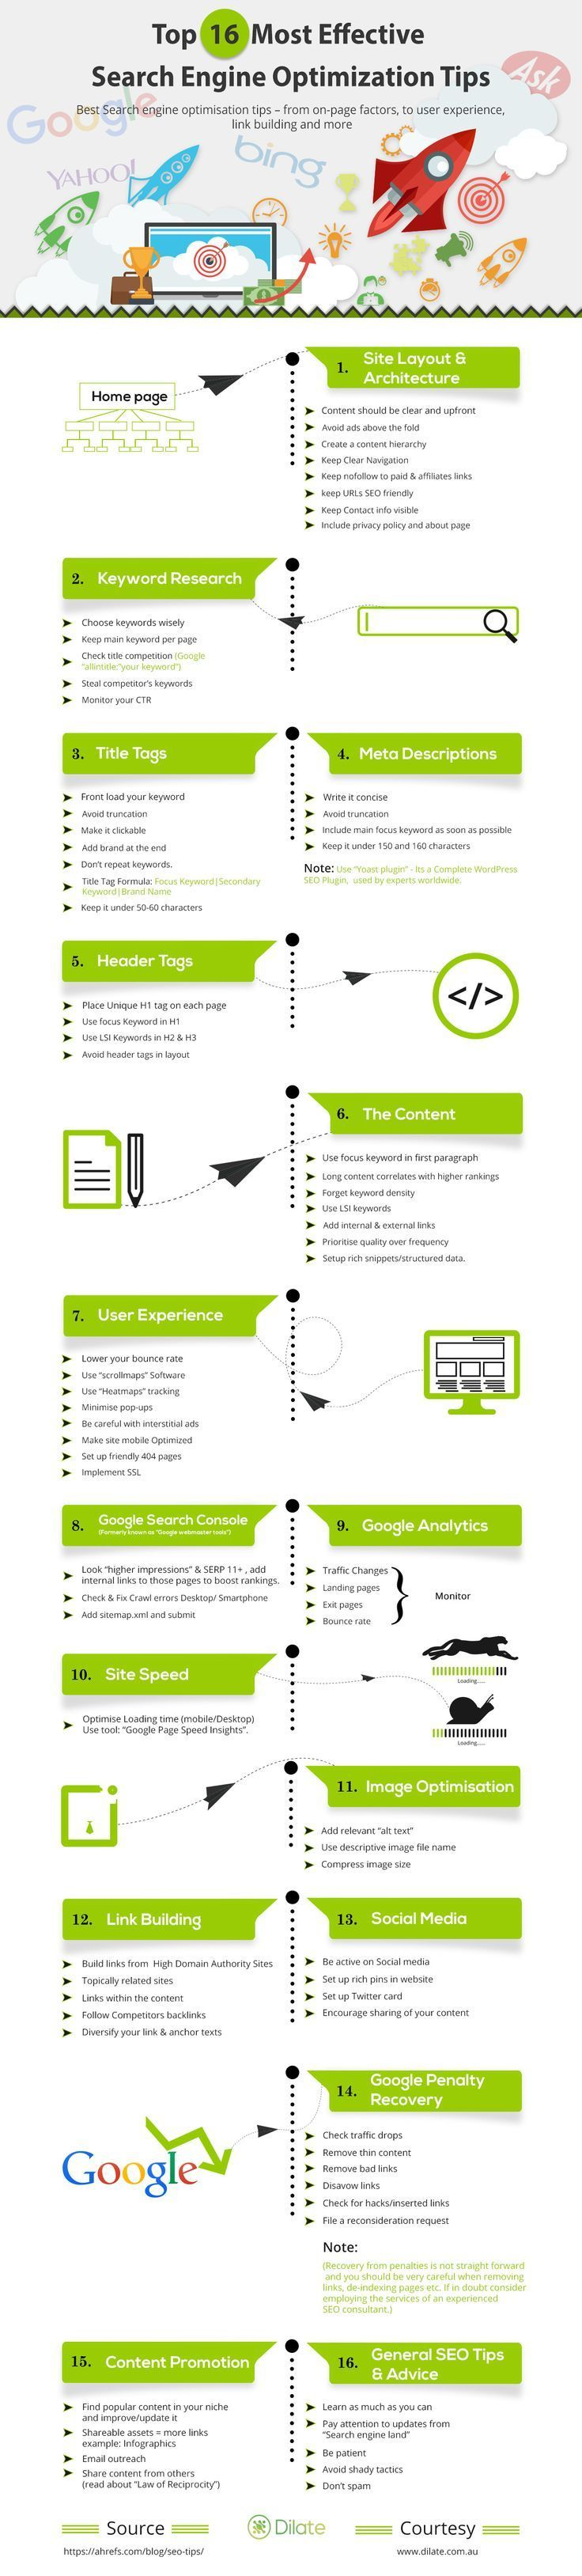 Top 16 Most Effective Search Engine Optimization Tips [Infographic] | Social…